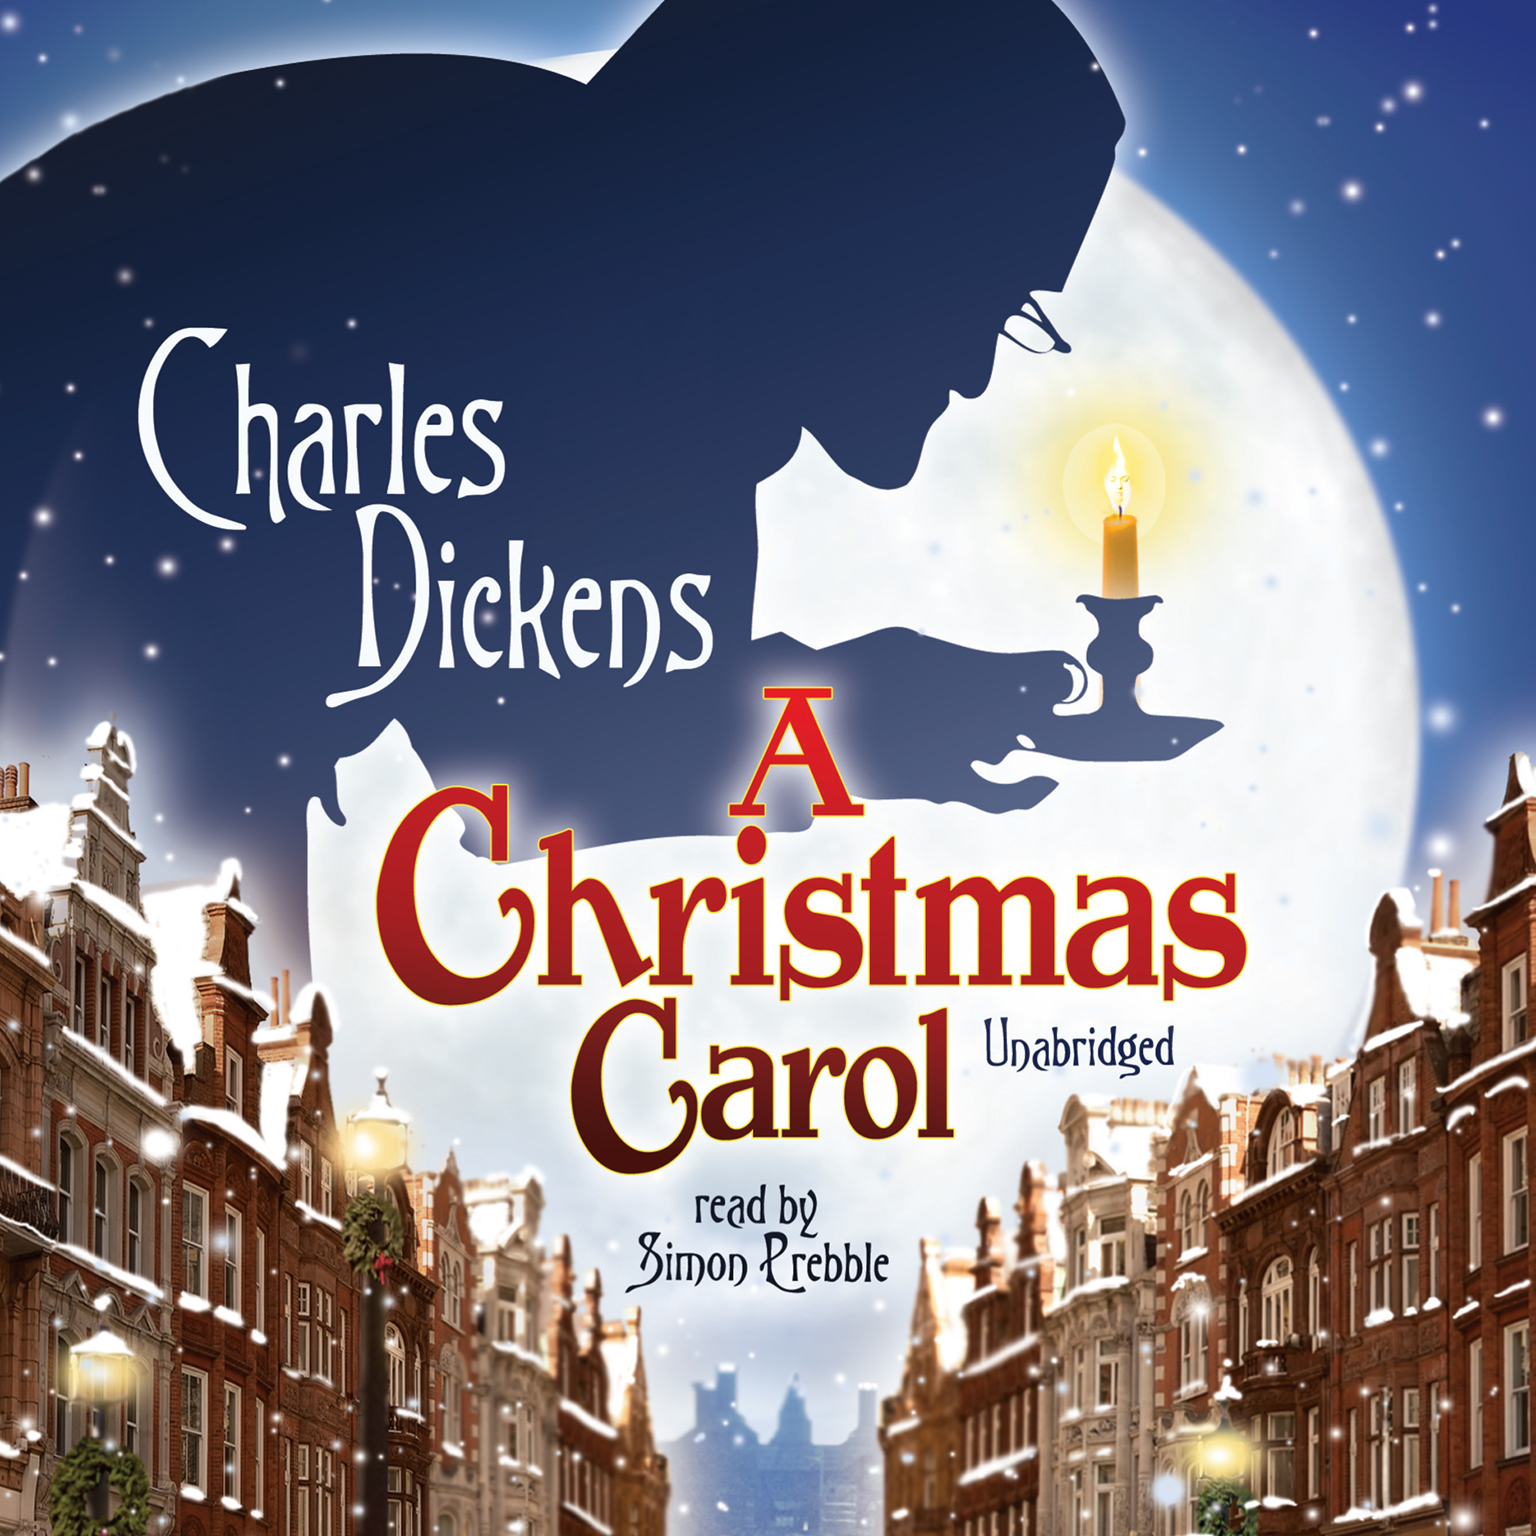 A Christmas Carol - Audiobook by Charles Dickens, read by Simon Prebble